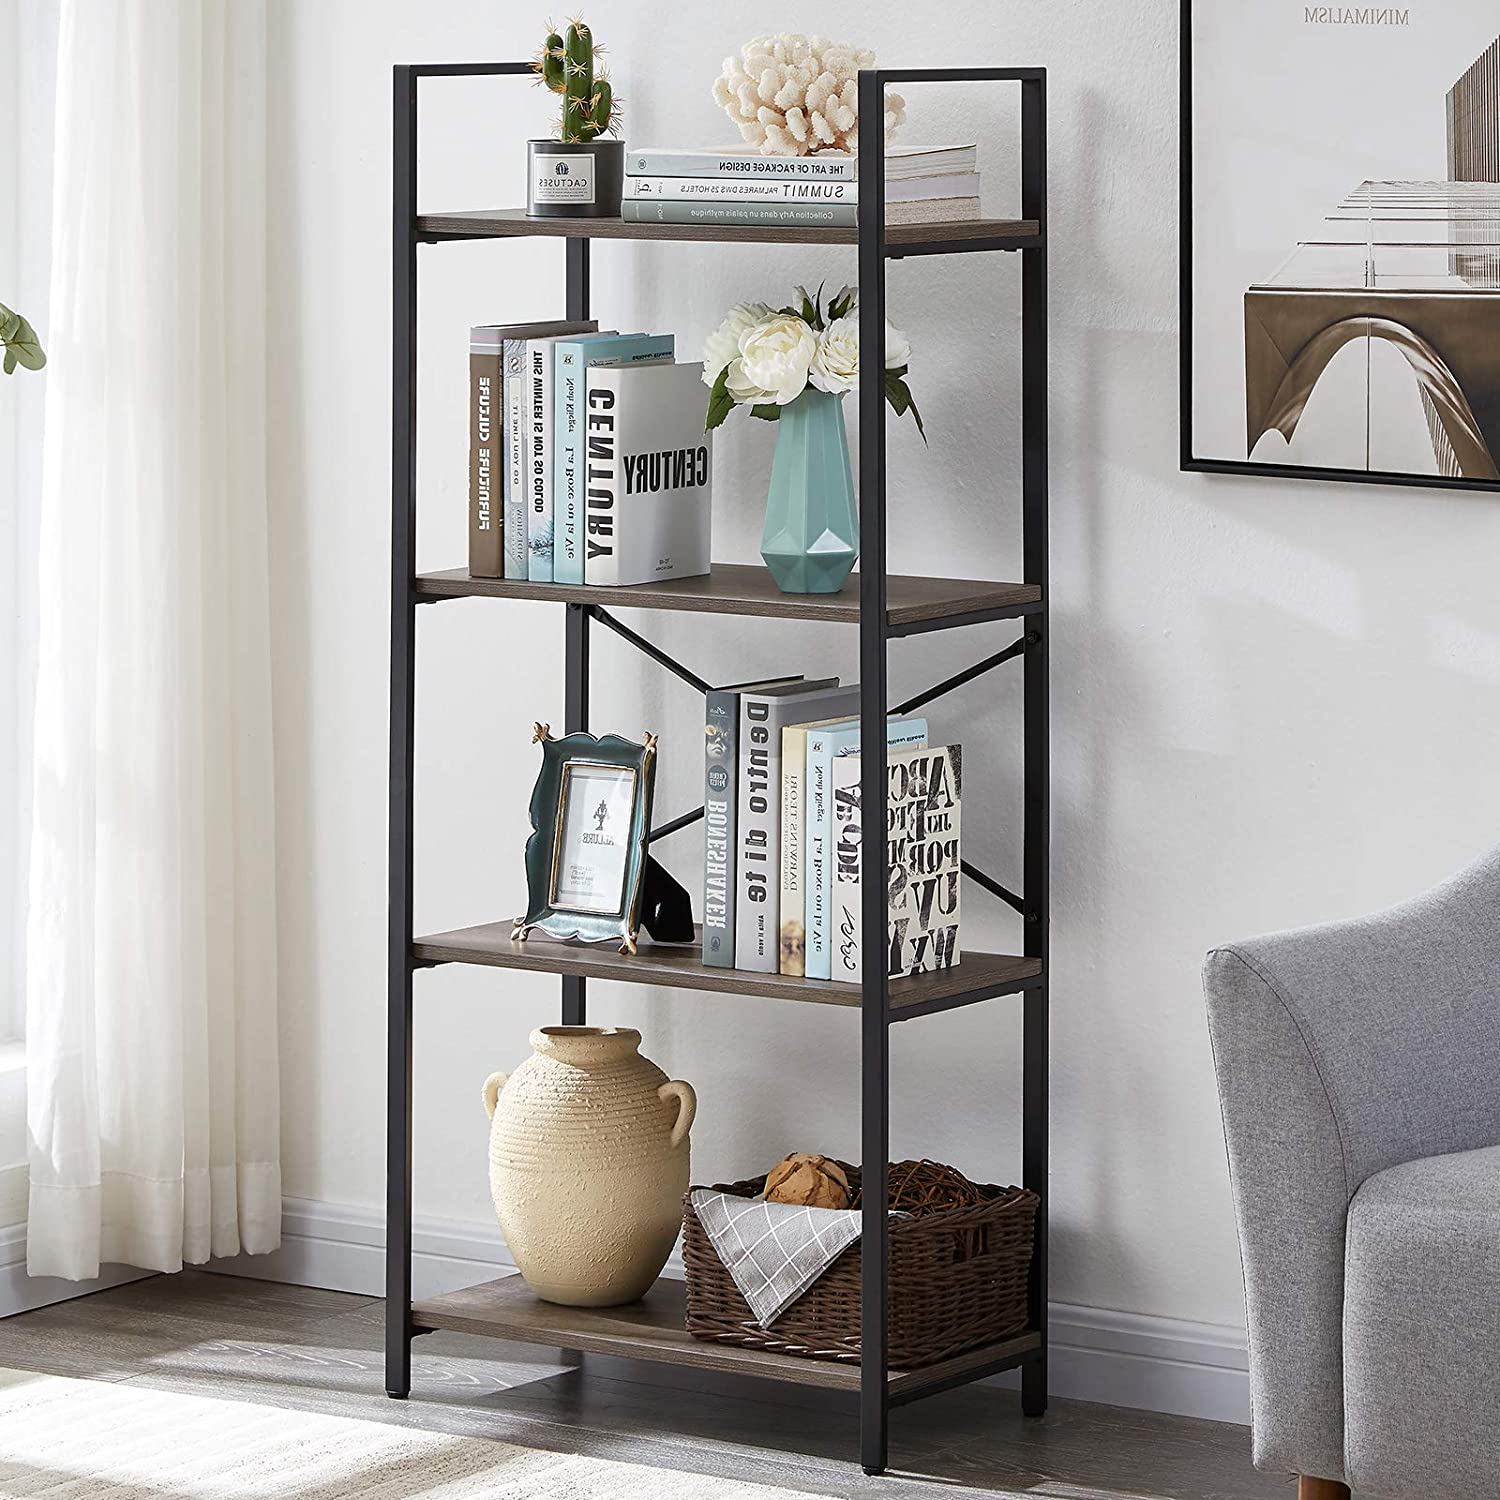 OIAHOMY Industrial Bookshelf, 4-Tier Bookcase and Bookshelves, Vintage Bookshelf with Metal Frame, Rustic Organizer Shelving Unit, Multipurpose Storage Display Rack for Home and Office - Oak Grey